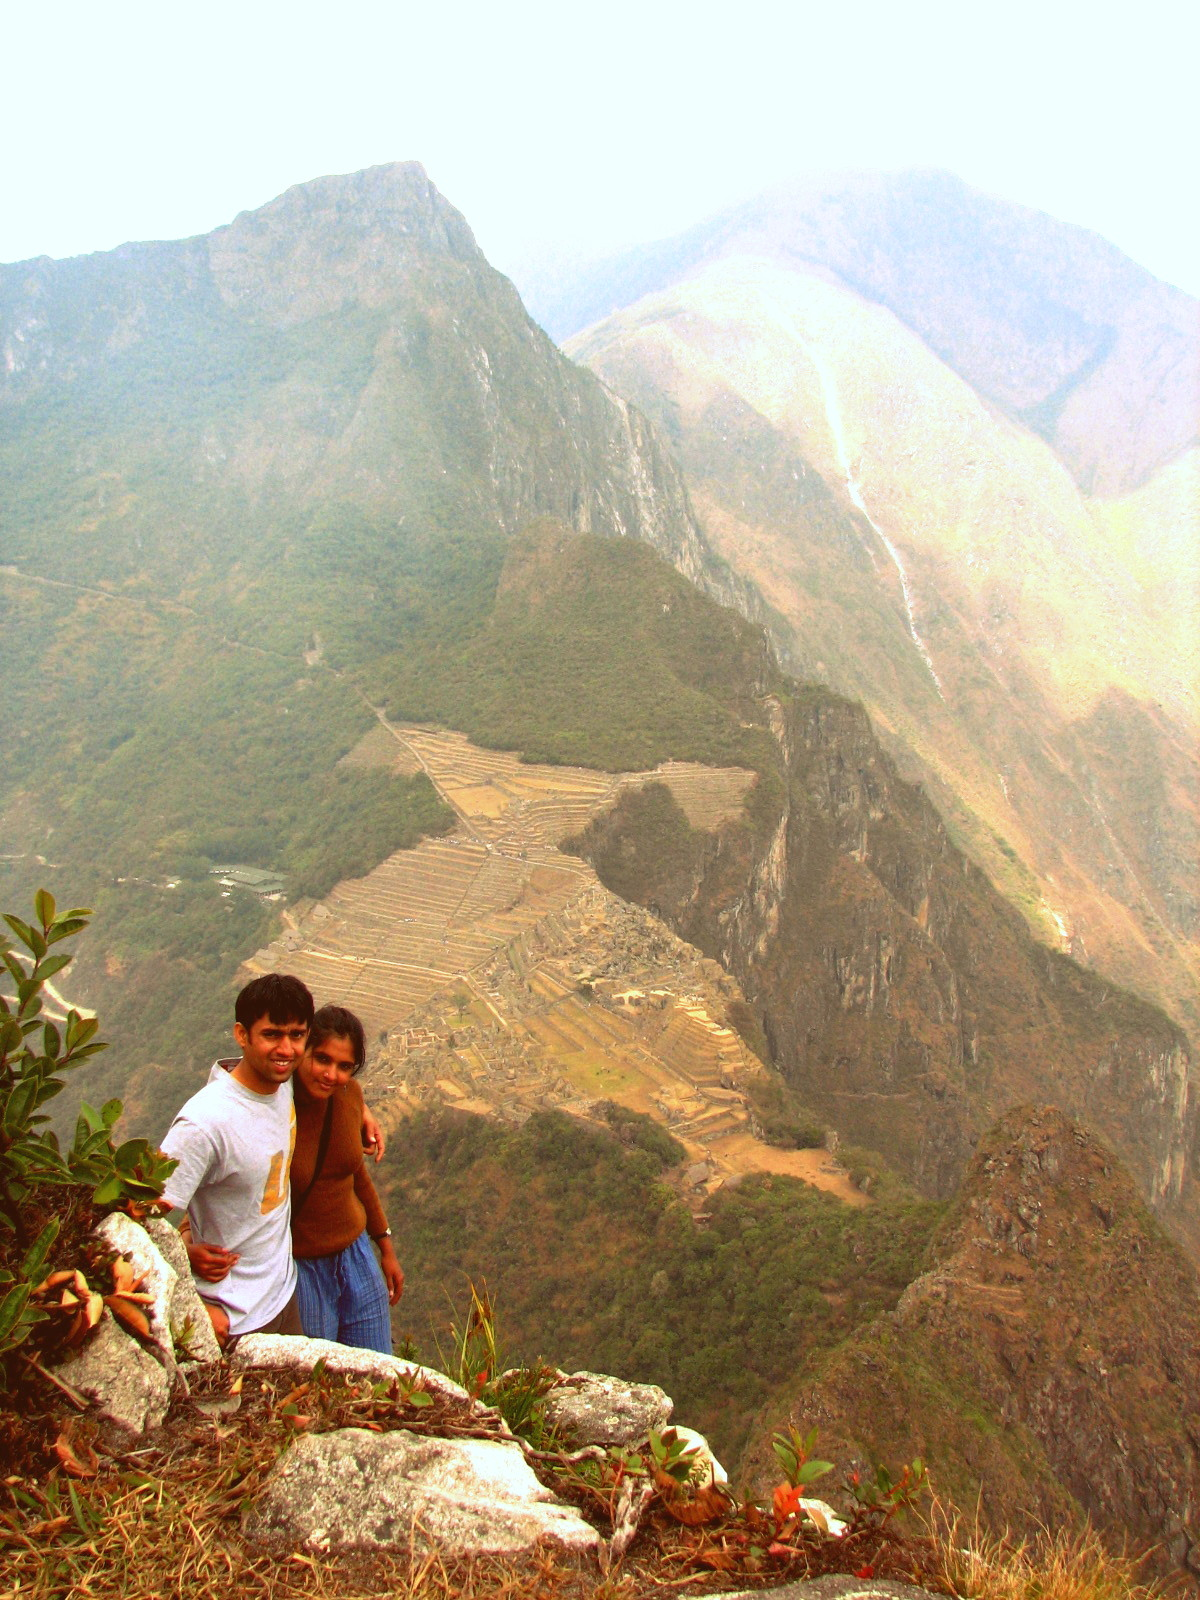 View of the Machu Picchu from the Wayna Picchu